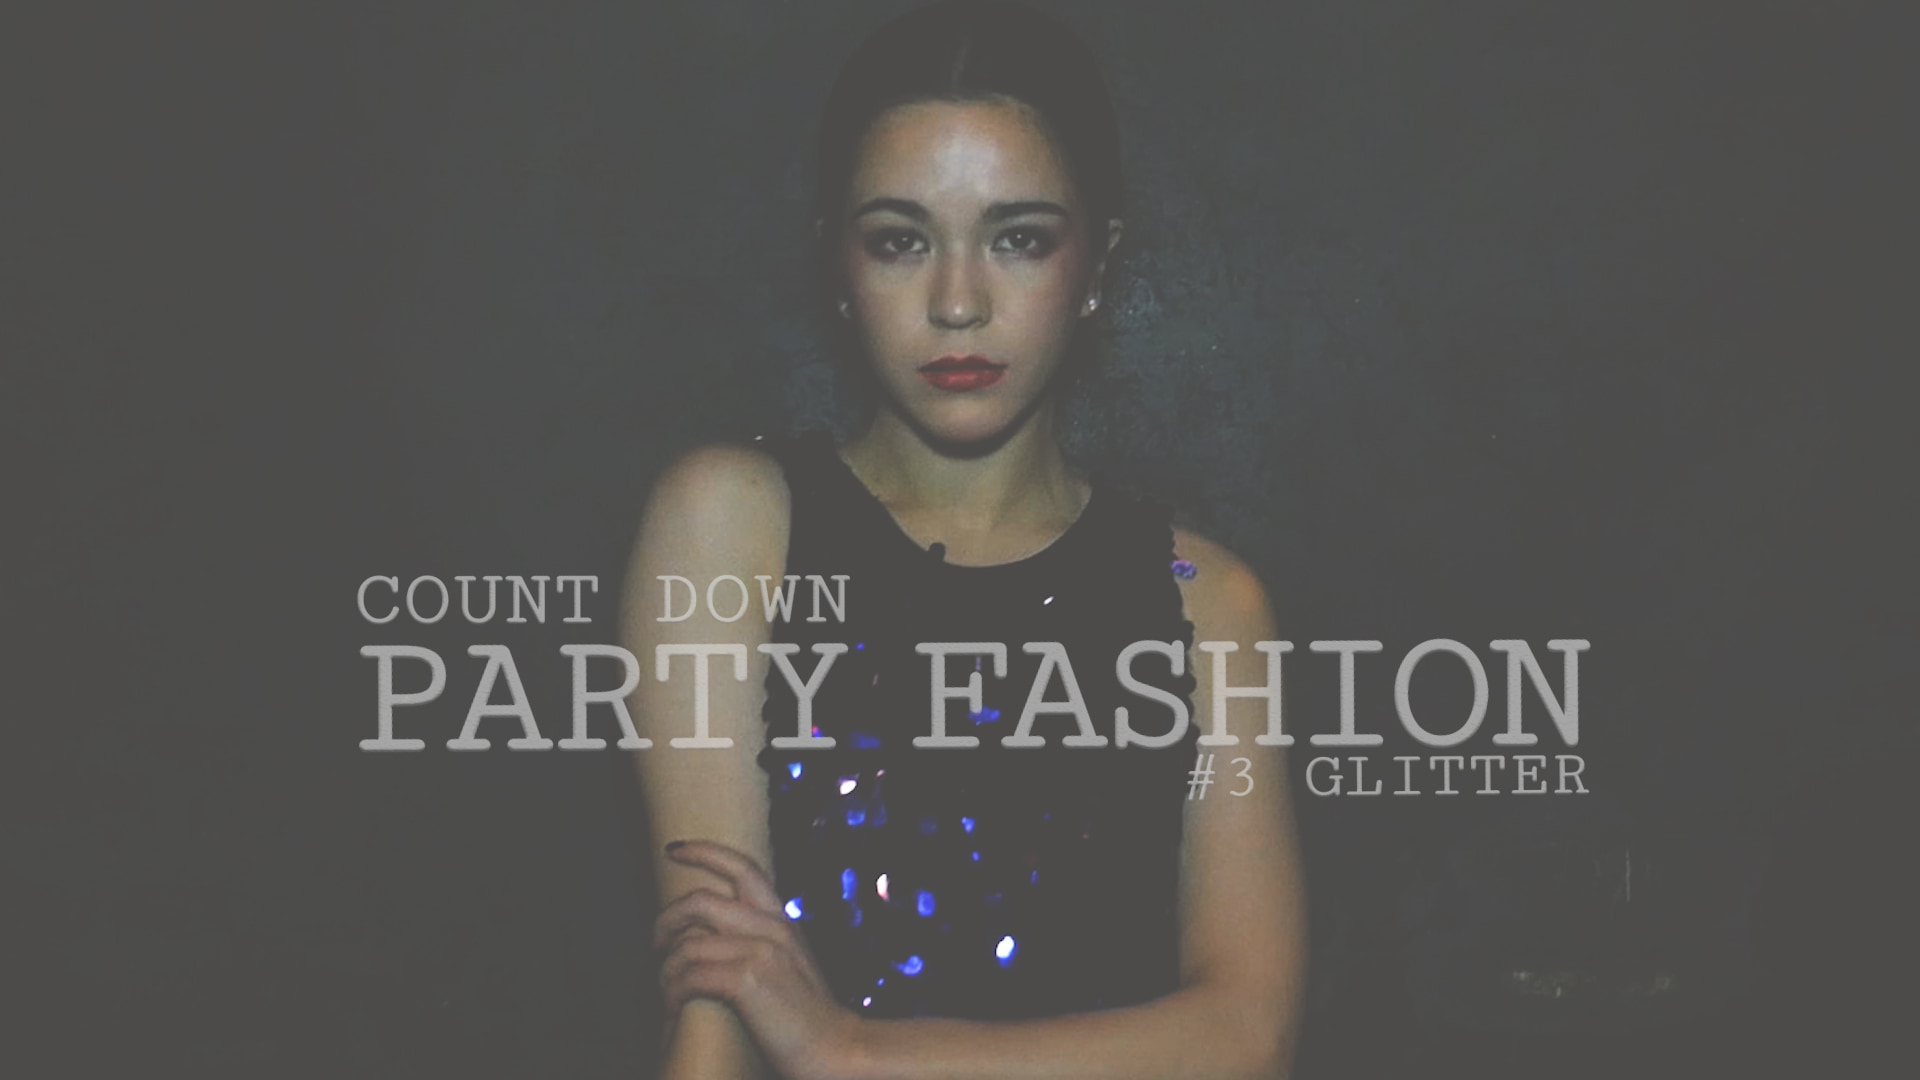 カウントダウン!PARTY FASHION〜#3 GLITTER〜